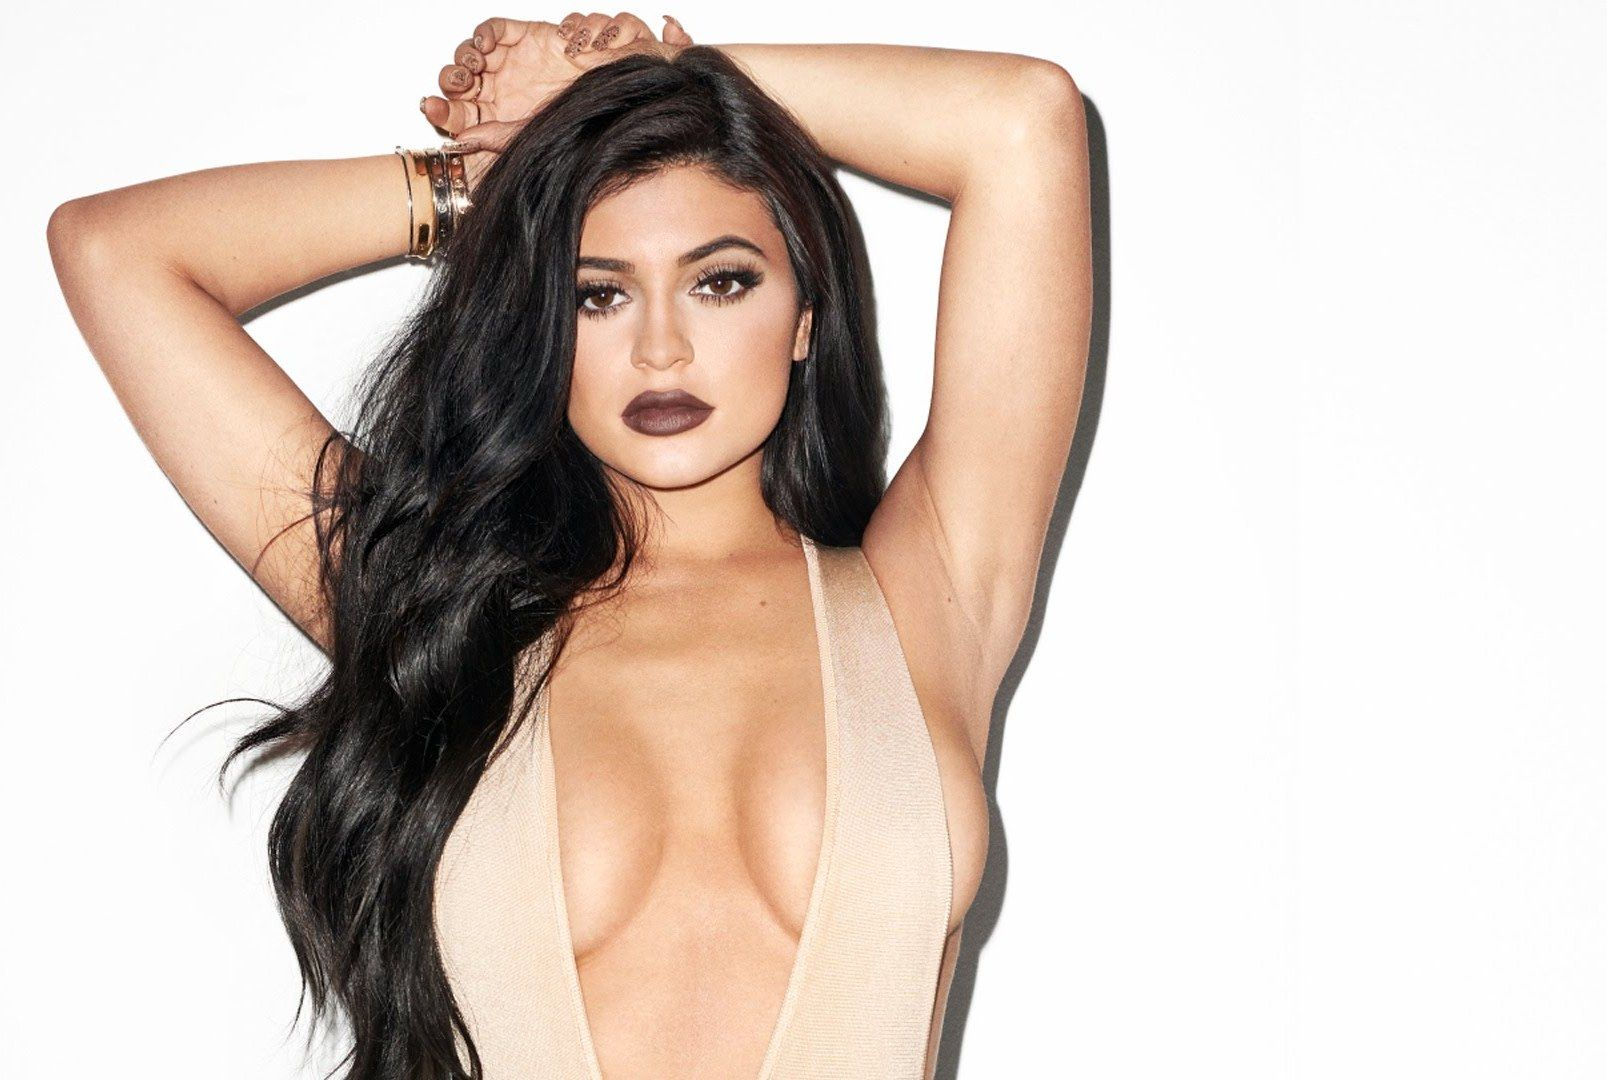 Kylie Jenner 2017 Hd Wallpapers: Kylie Jenner Wallpapers 2016